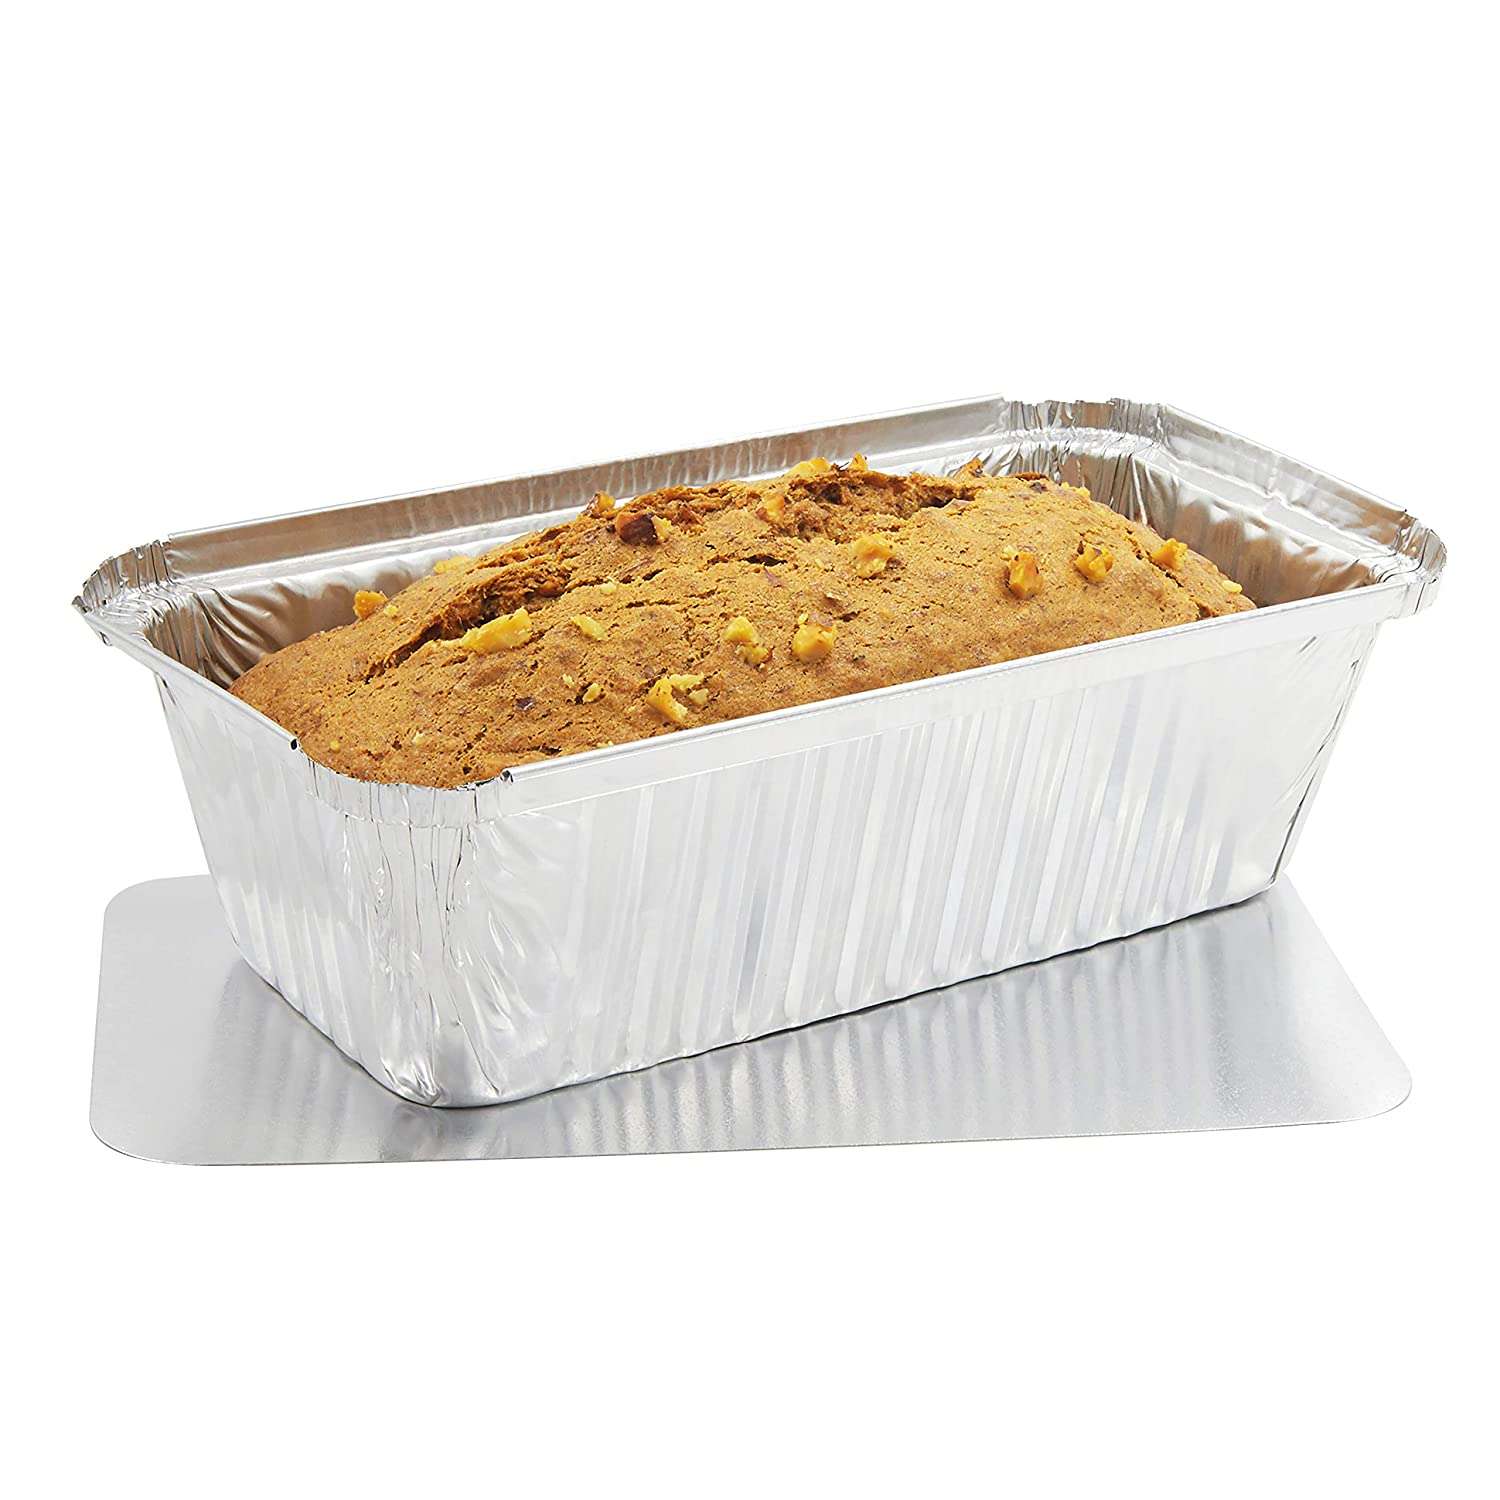 Juvale Loaf Pans with Lid (50 Pack) Disposable Aluminum Foil Bread Baking Tins 8.5 x 2.5 x 4.5 inches (22 Ounce)